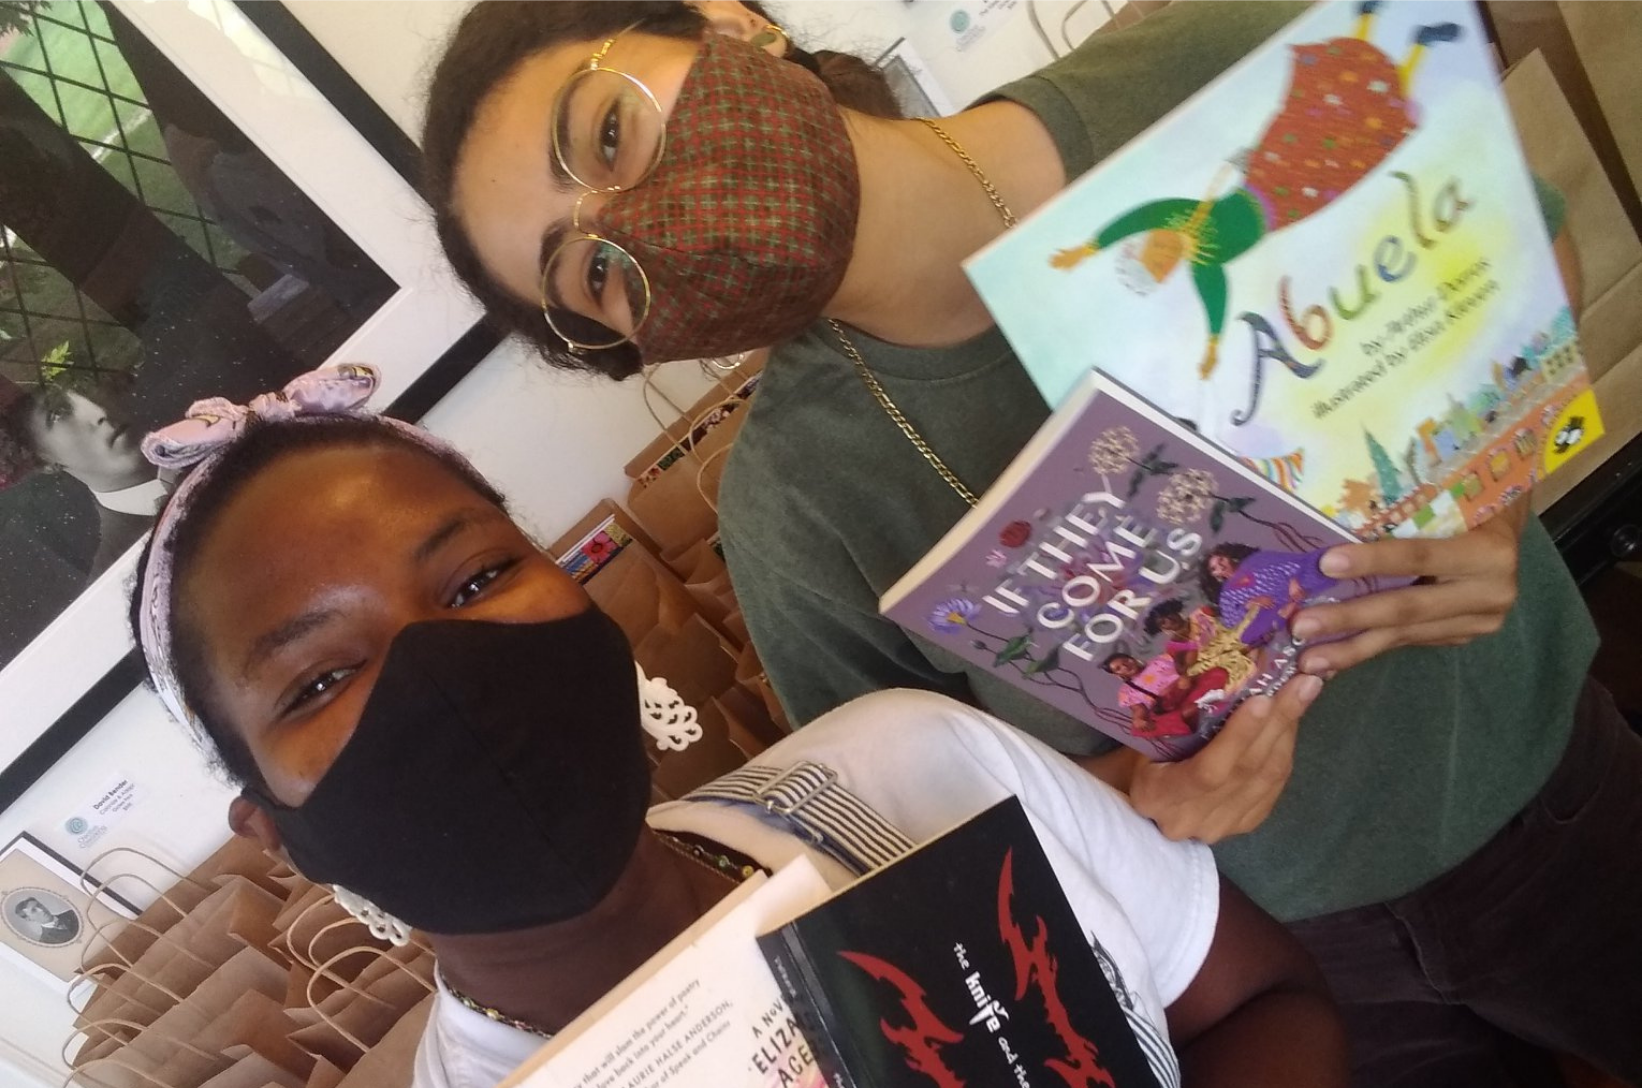 Two women in masks holding up children's books